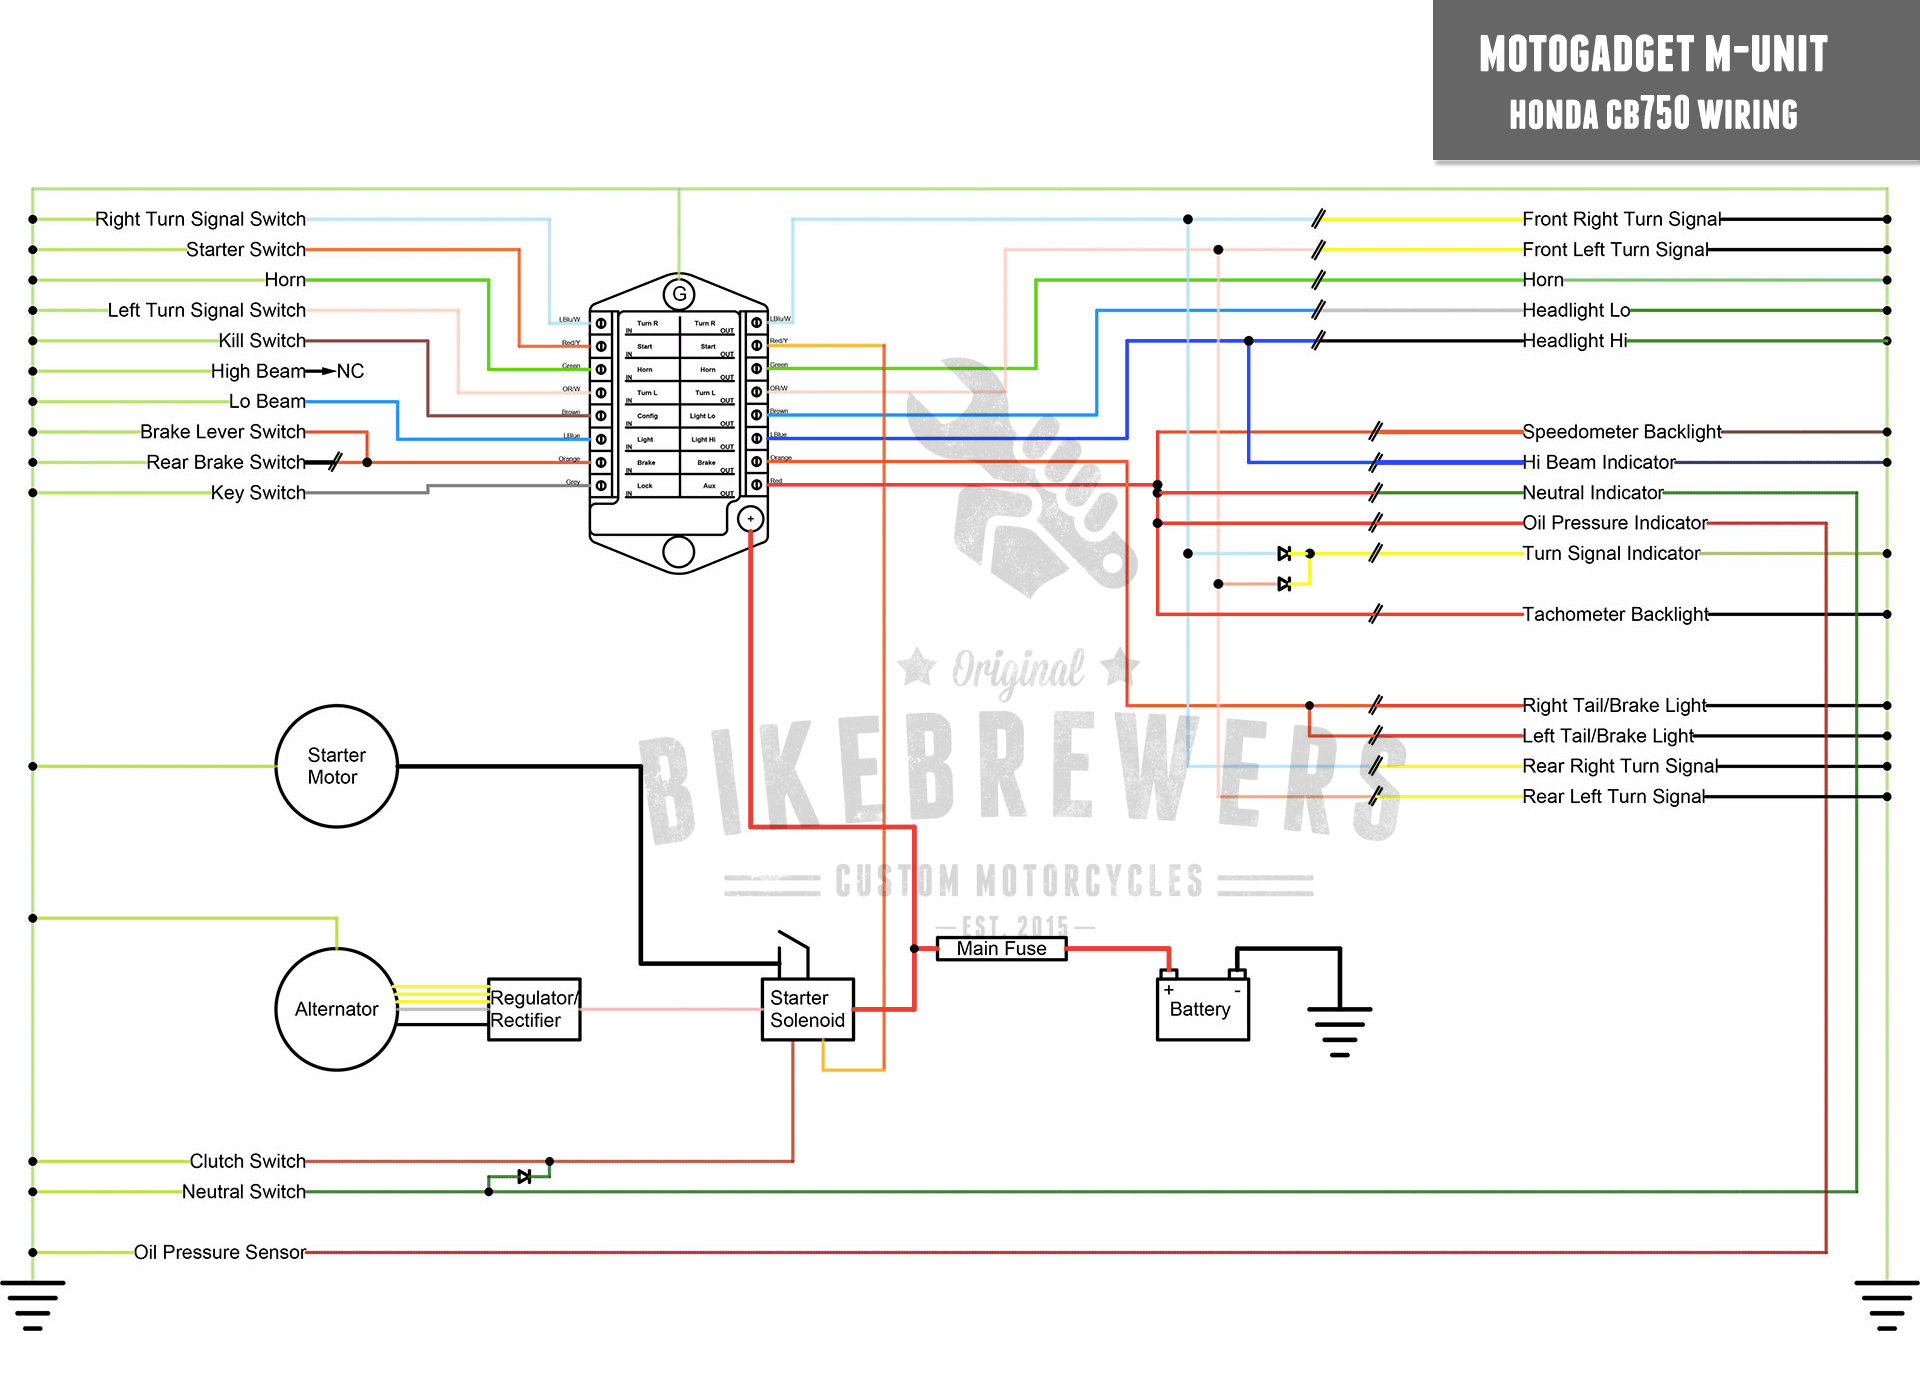 motogadget m unit wiring bikebrewers com 2012 VW Jetta Fuse Box Diagram  2012 VW Jetta Fuse